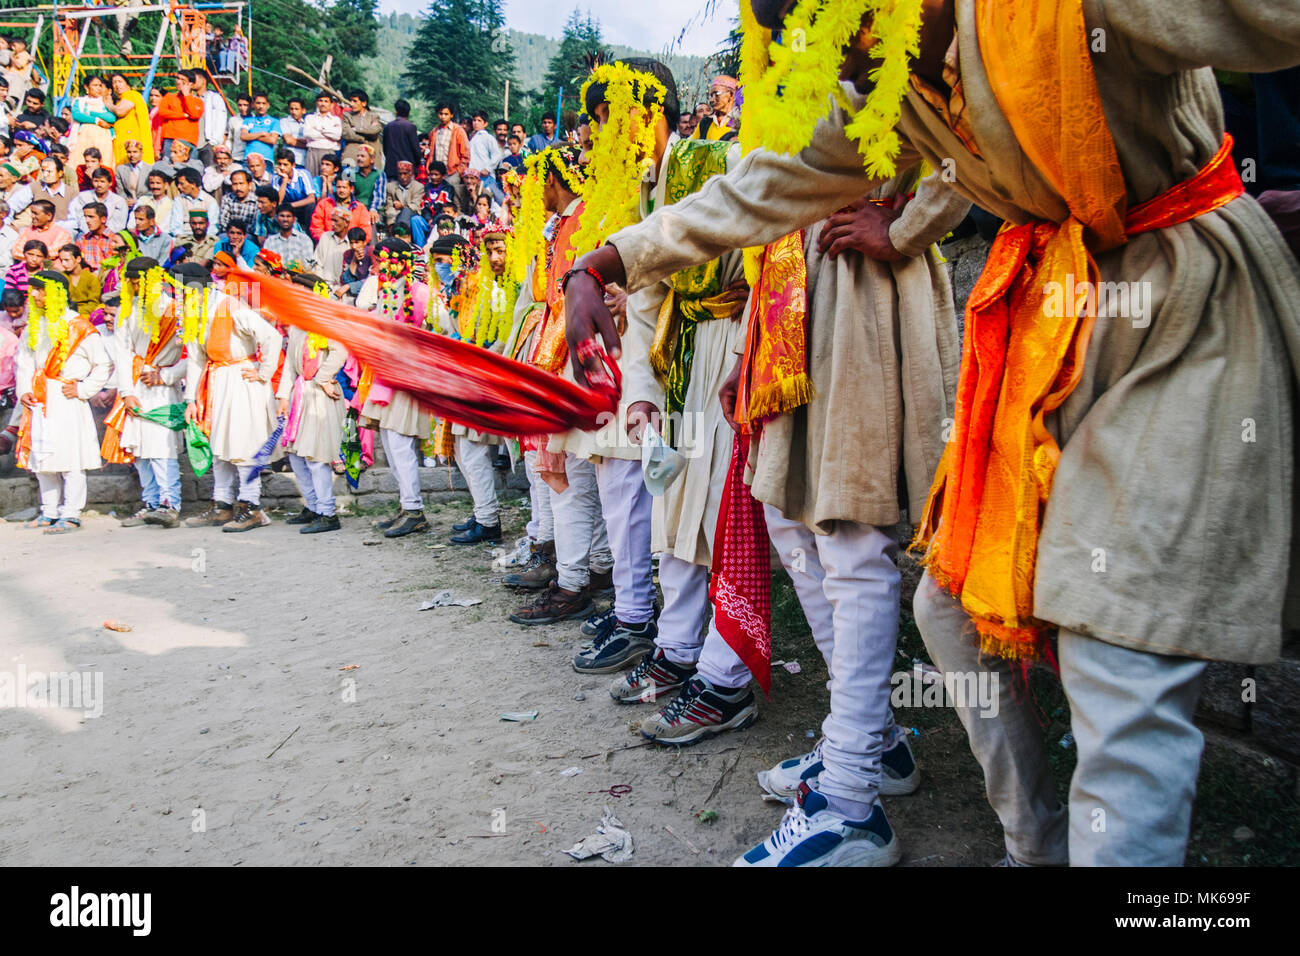 Nagar, Himachal Pradesh, India : During the Naggar Mela festival  rajput dancers with handkerchiefs in their hands dance in honor of the local deity T - Stock Image